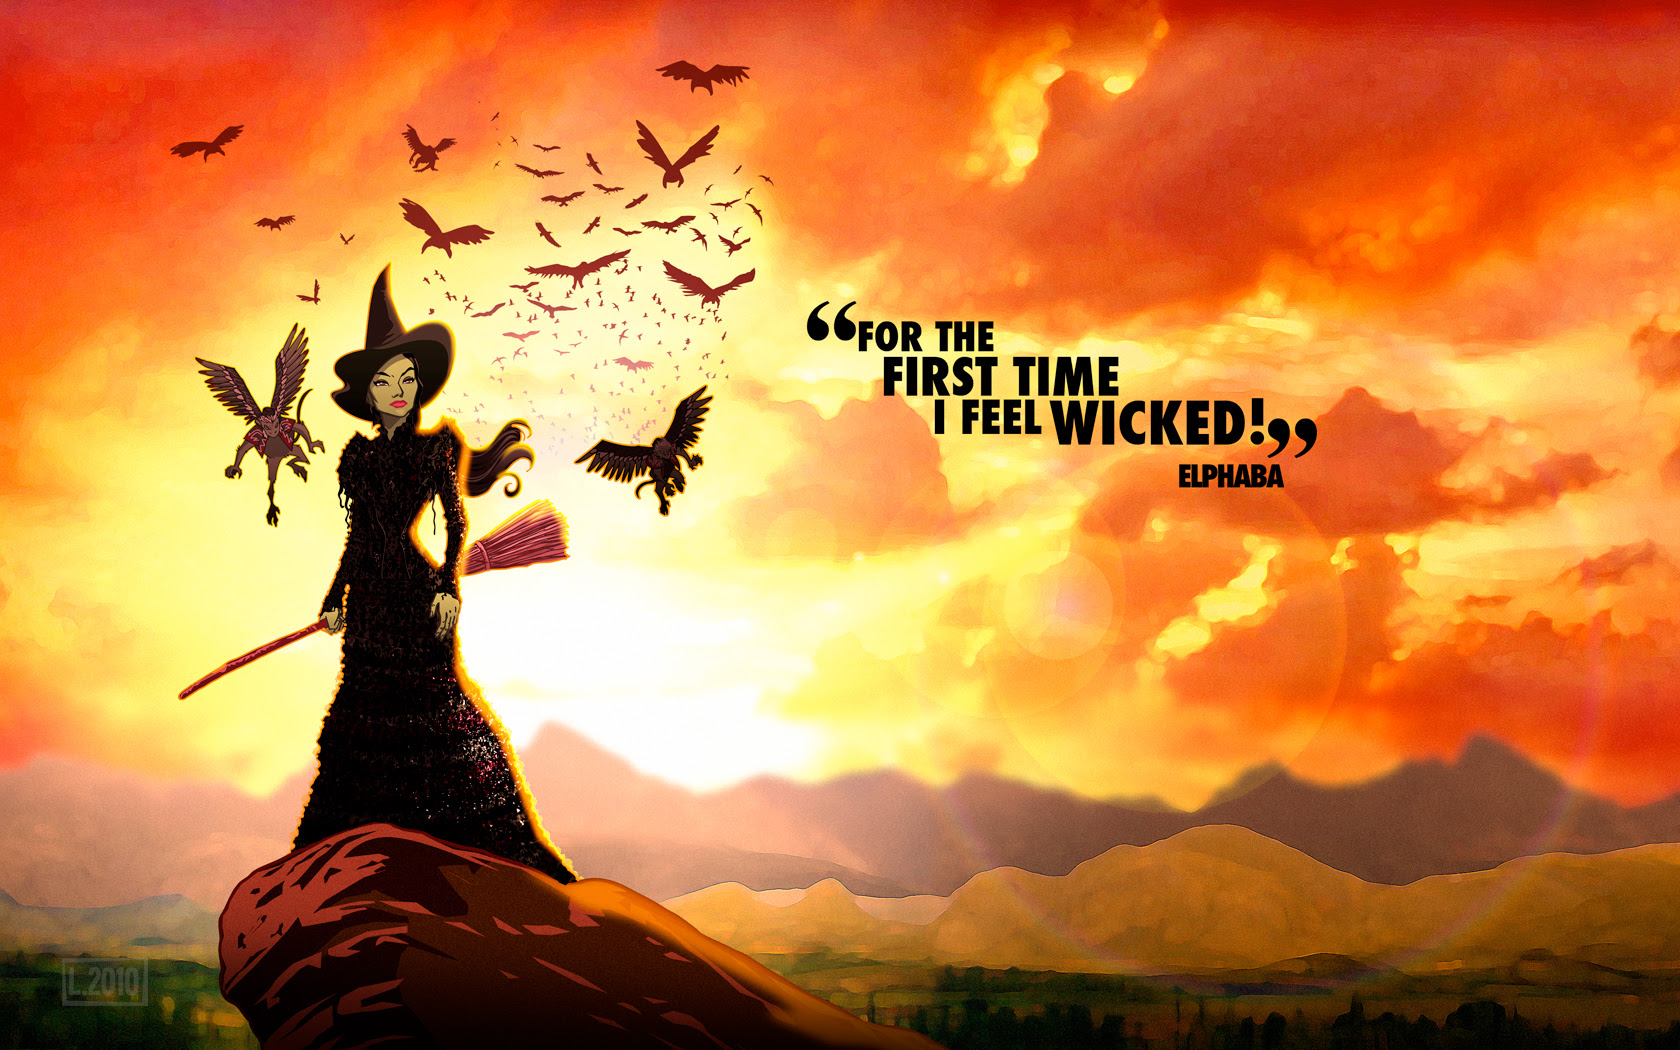 A Smashing Good Time The Wicked Witch Of The West The Hidden